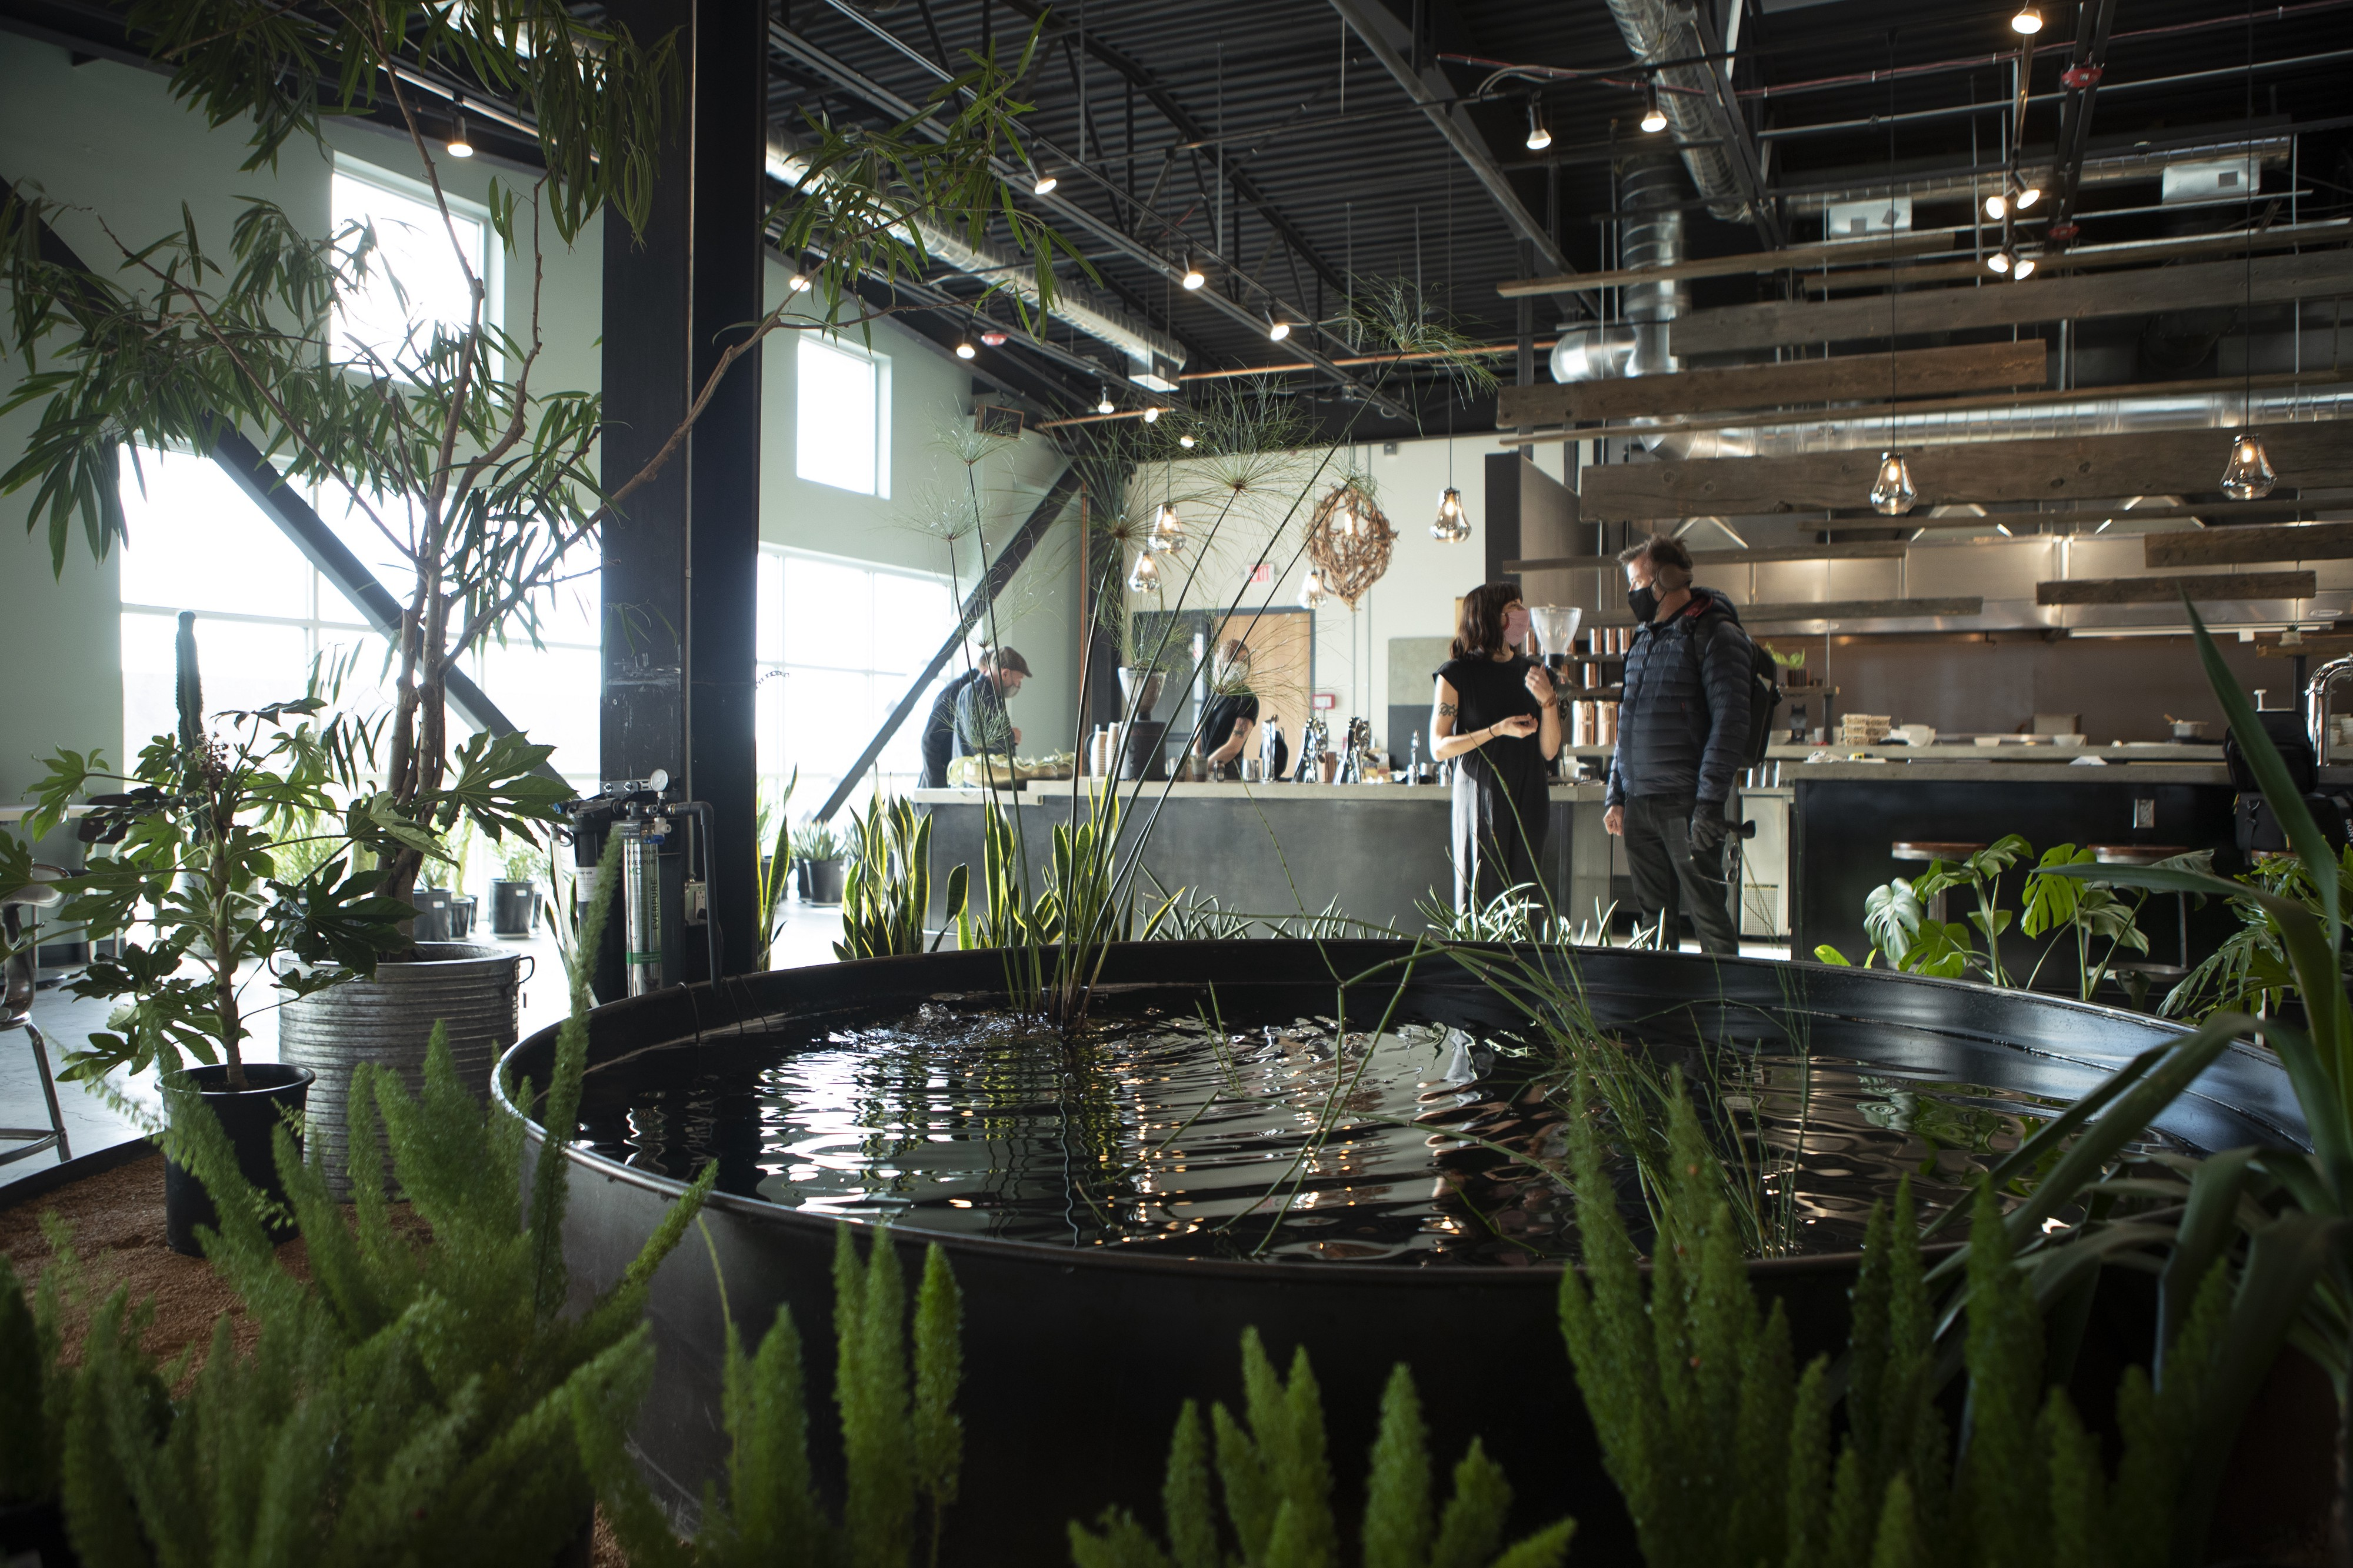 A few masked people surround a counter to order food. A big koi pond is in the forefront surrounded by tropical and desert plants